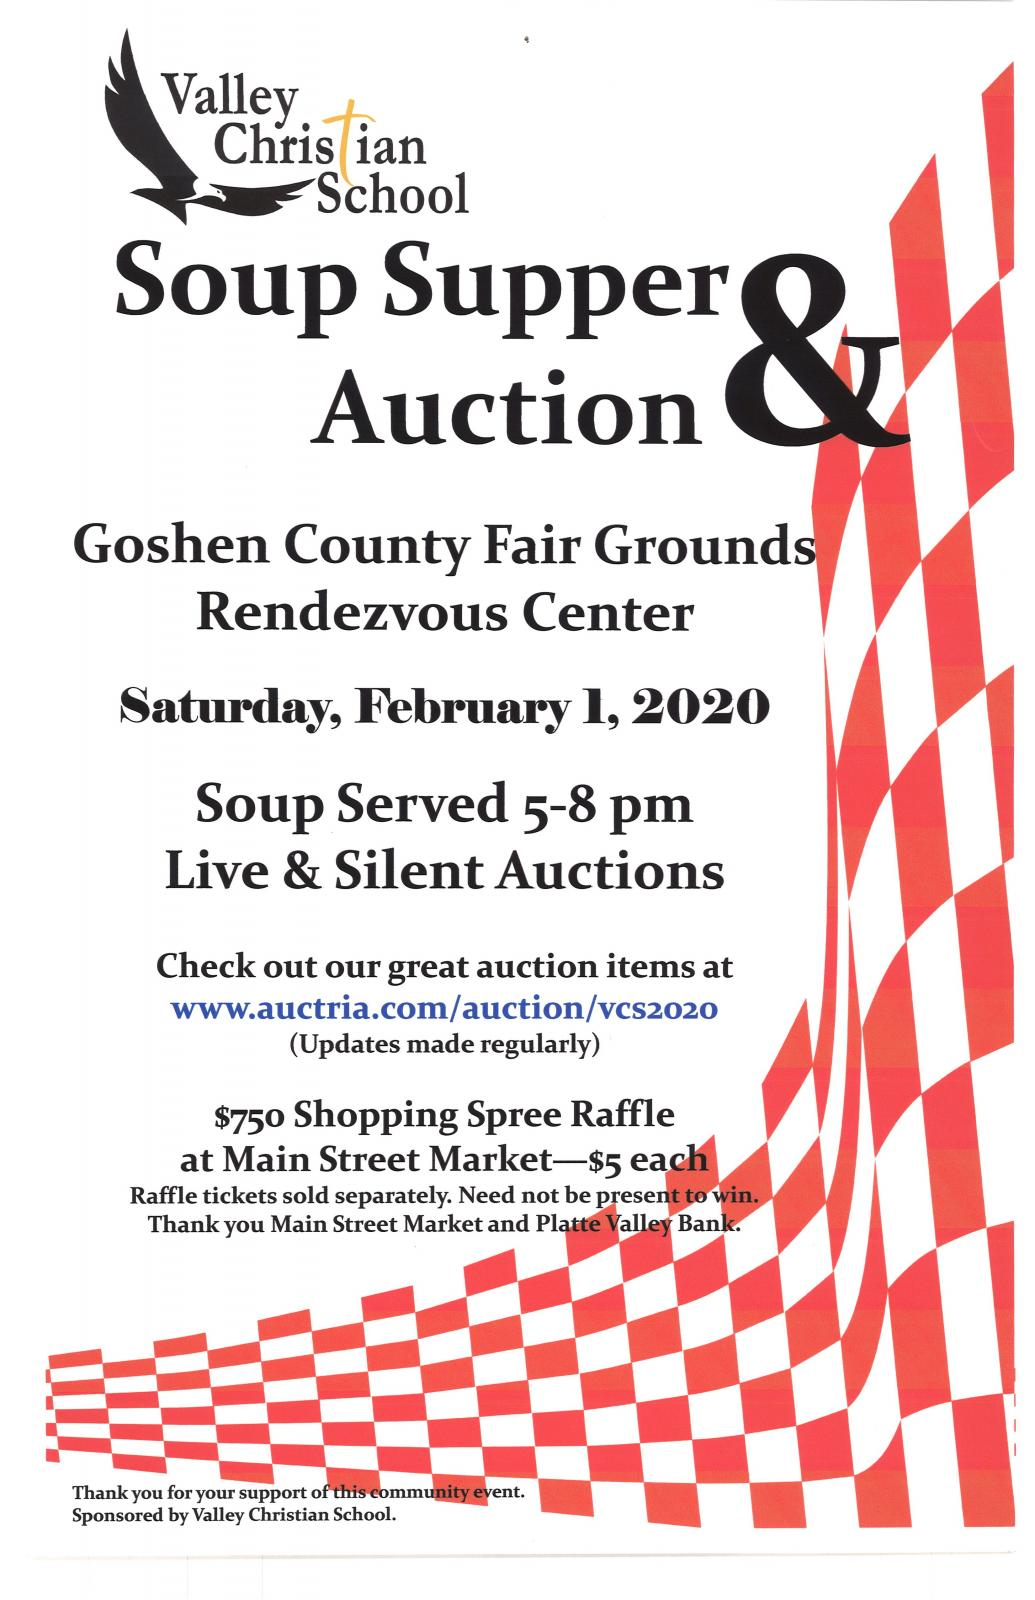 Valley Christian School Soup Supper & Auction Photo